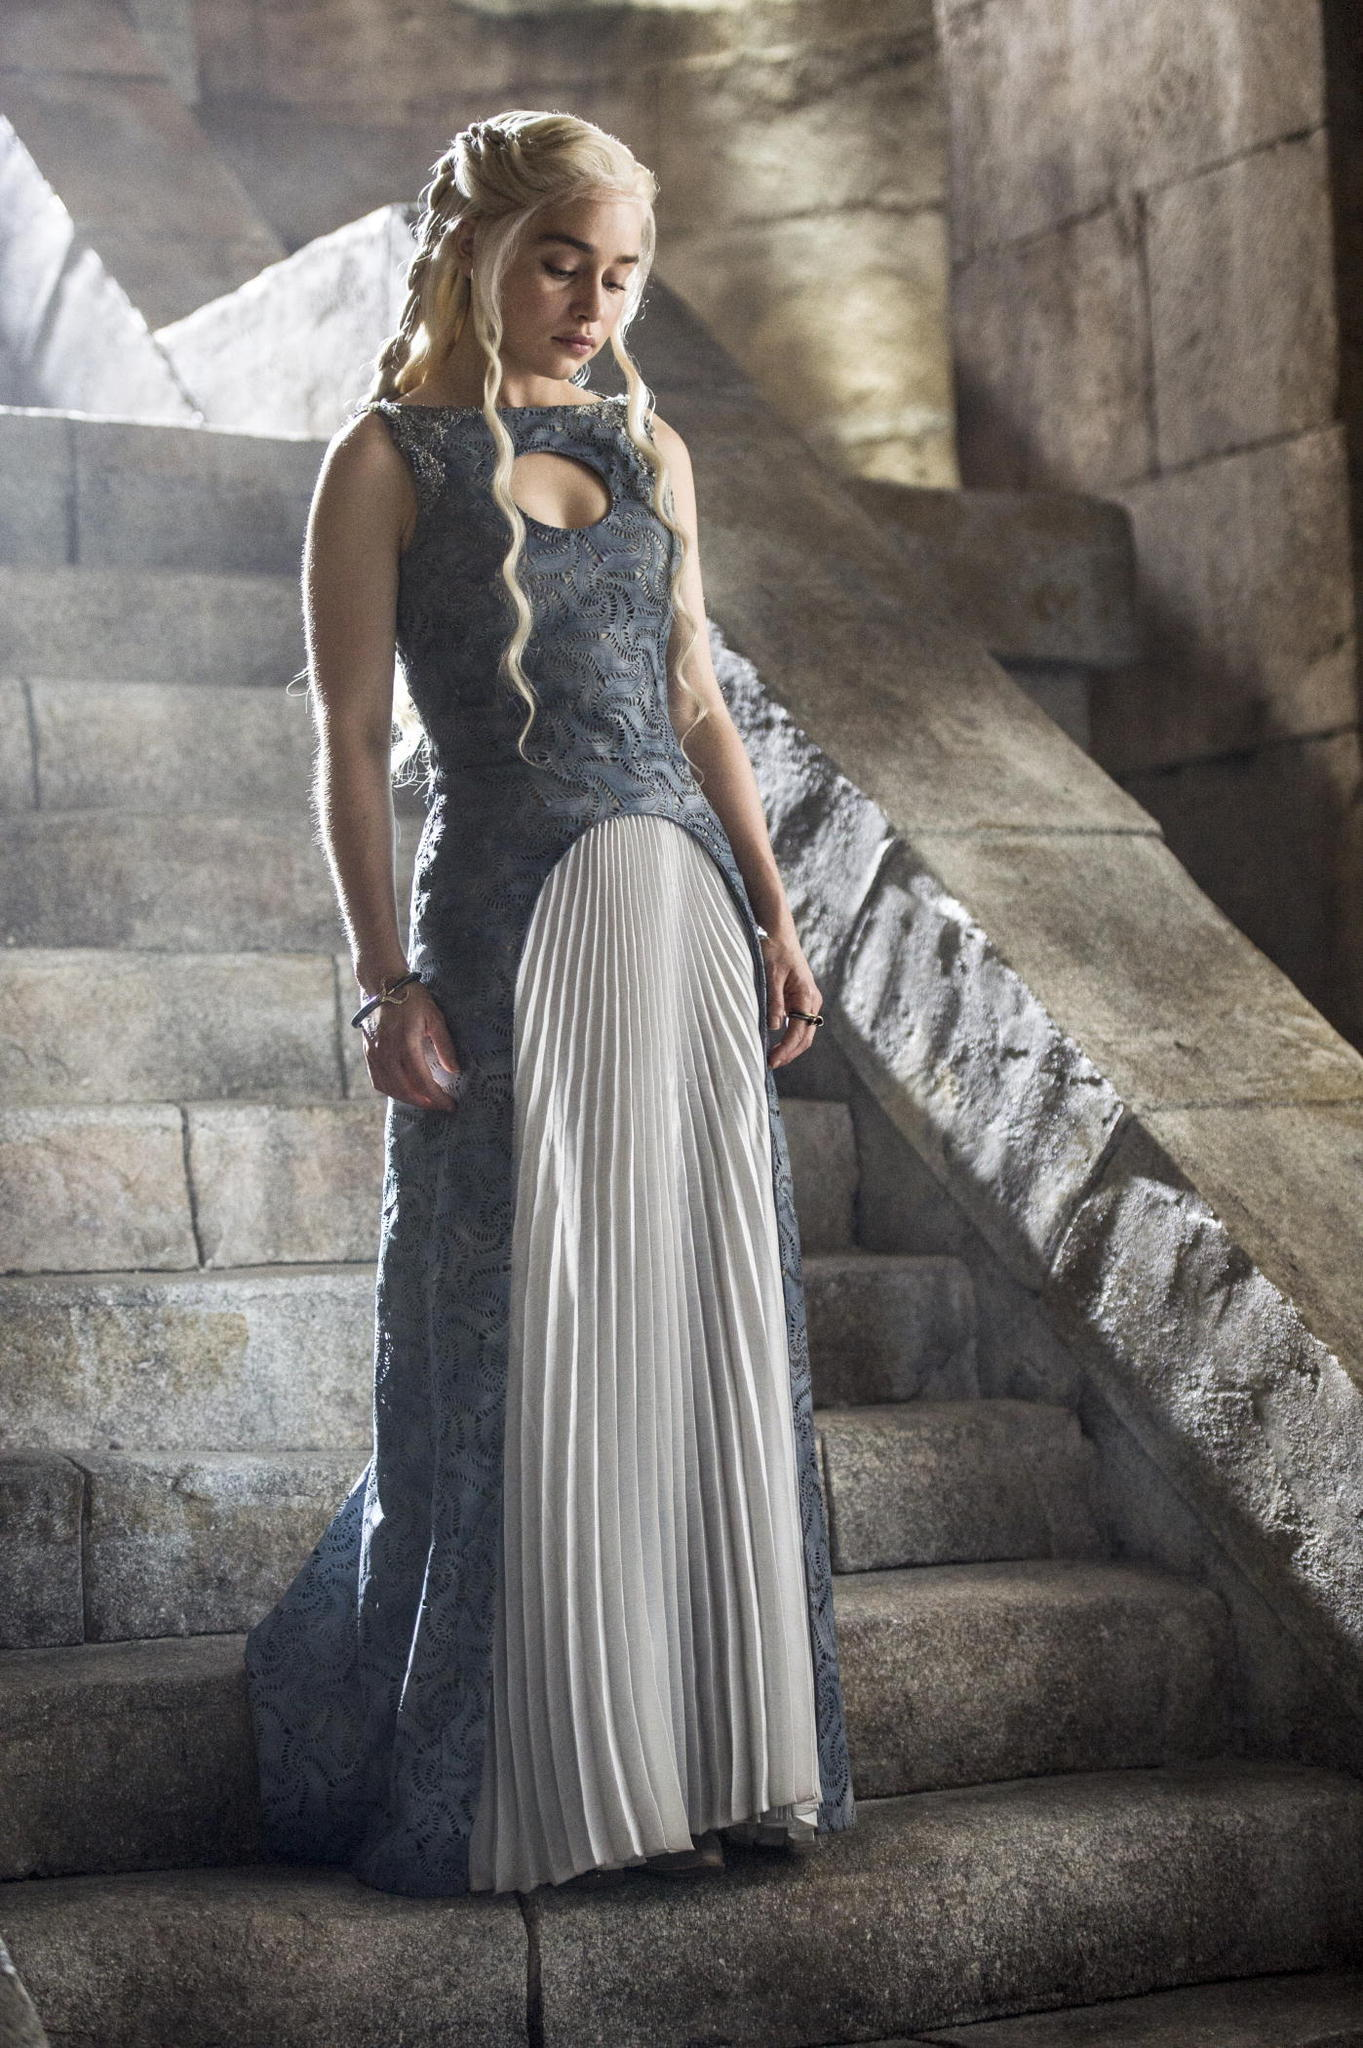 Game of Thrones Season 4 Finale Preview The Children -  Danearys in hot dress www.scifiempire.net